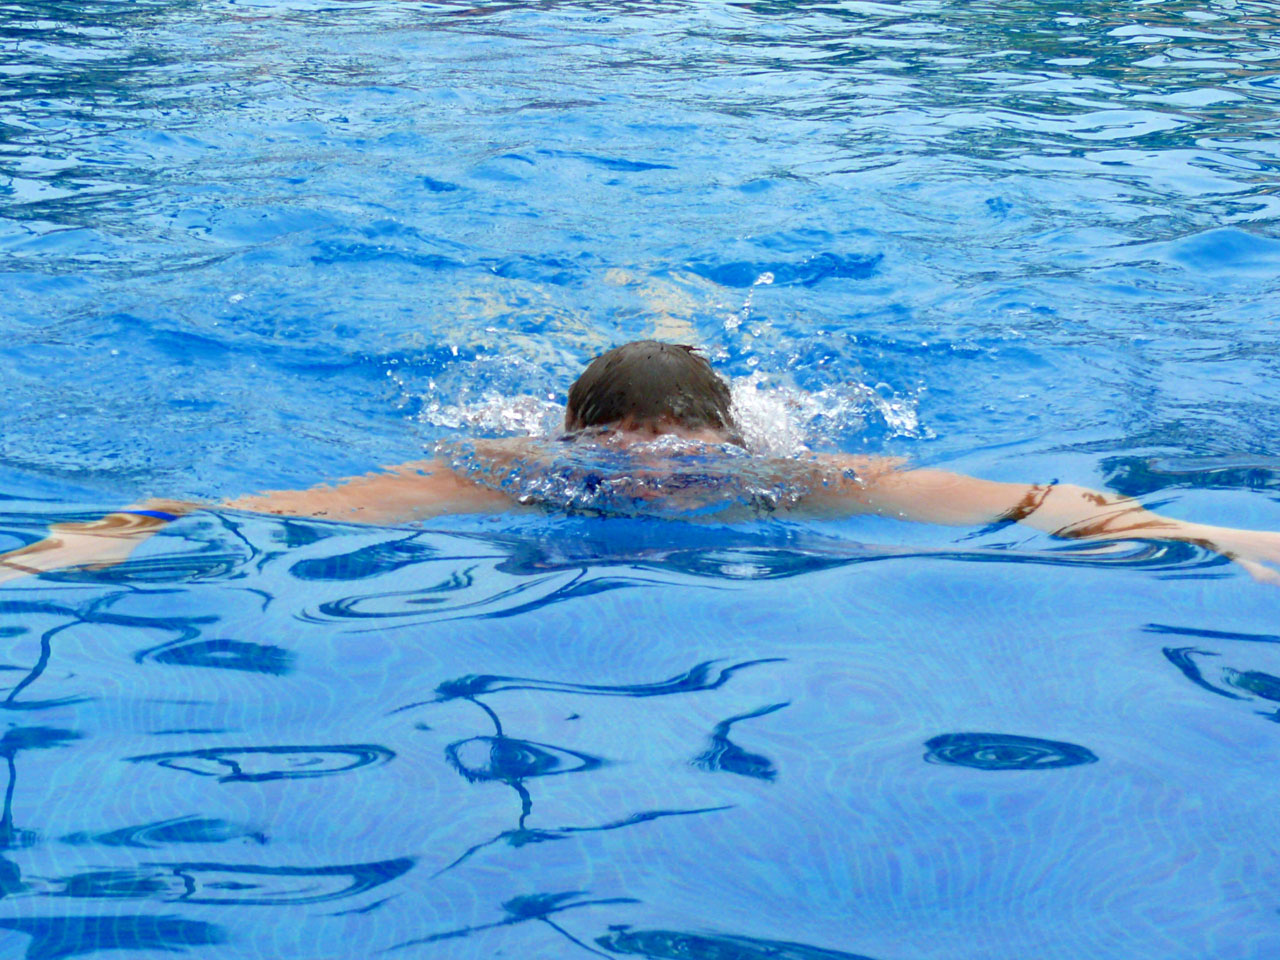 Learn How To Free Dive by Holding Your Breath With a Free Diving Course